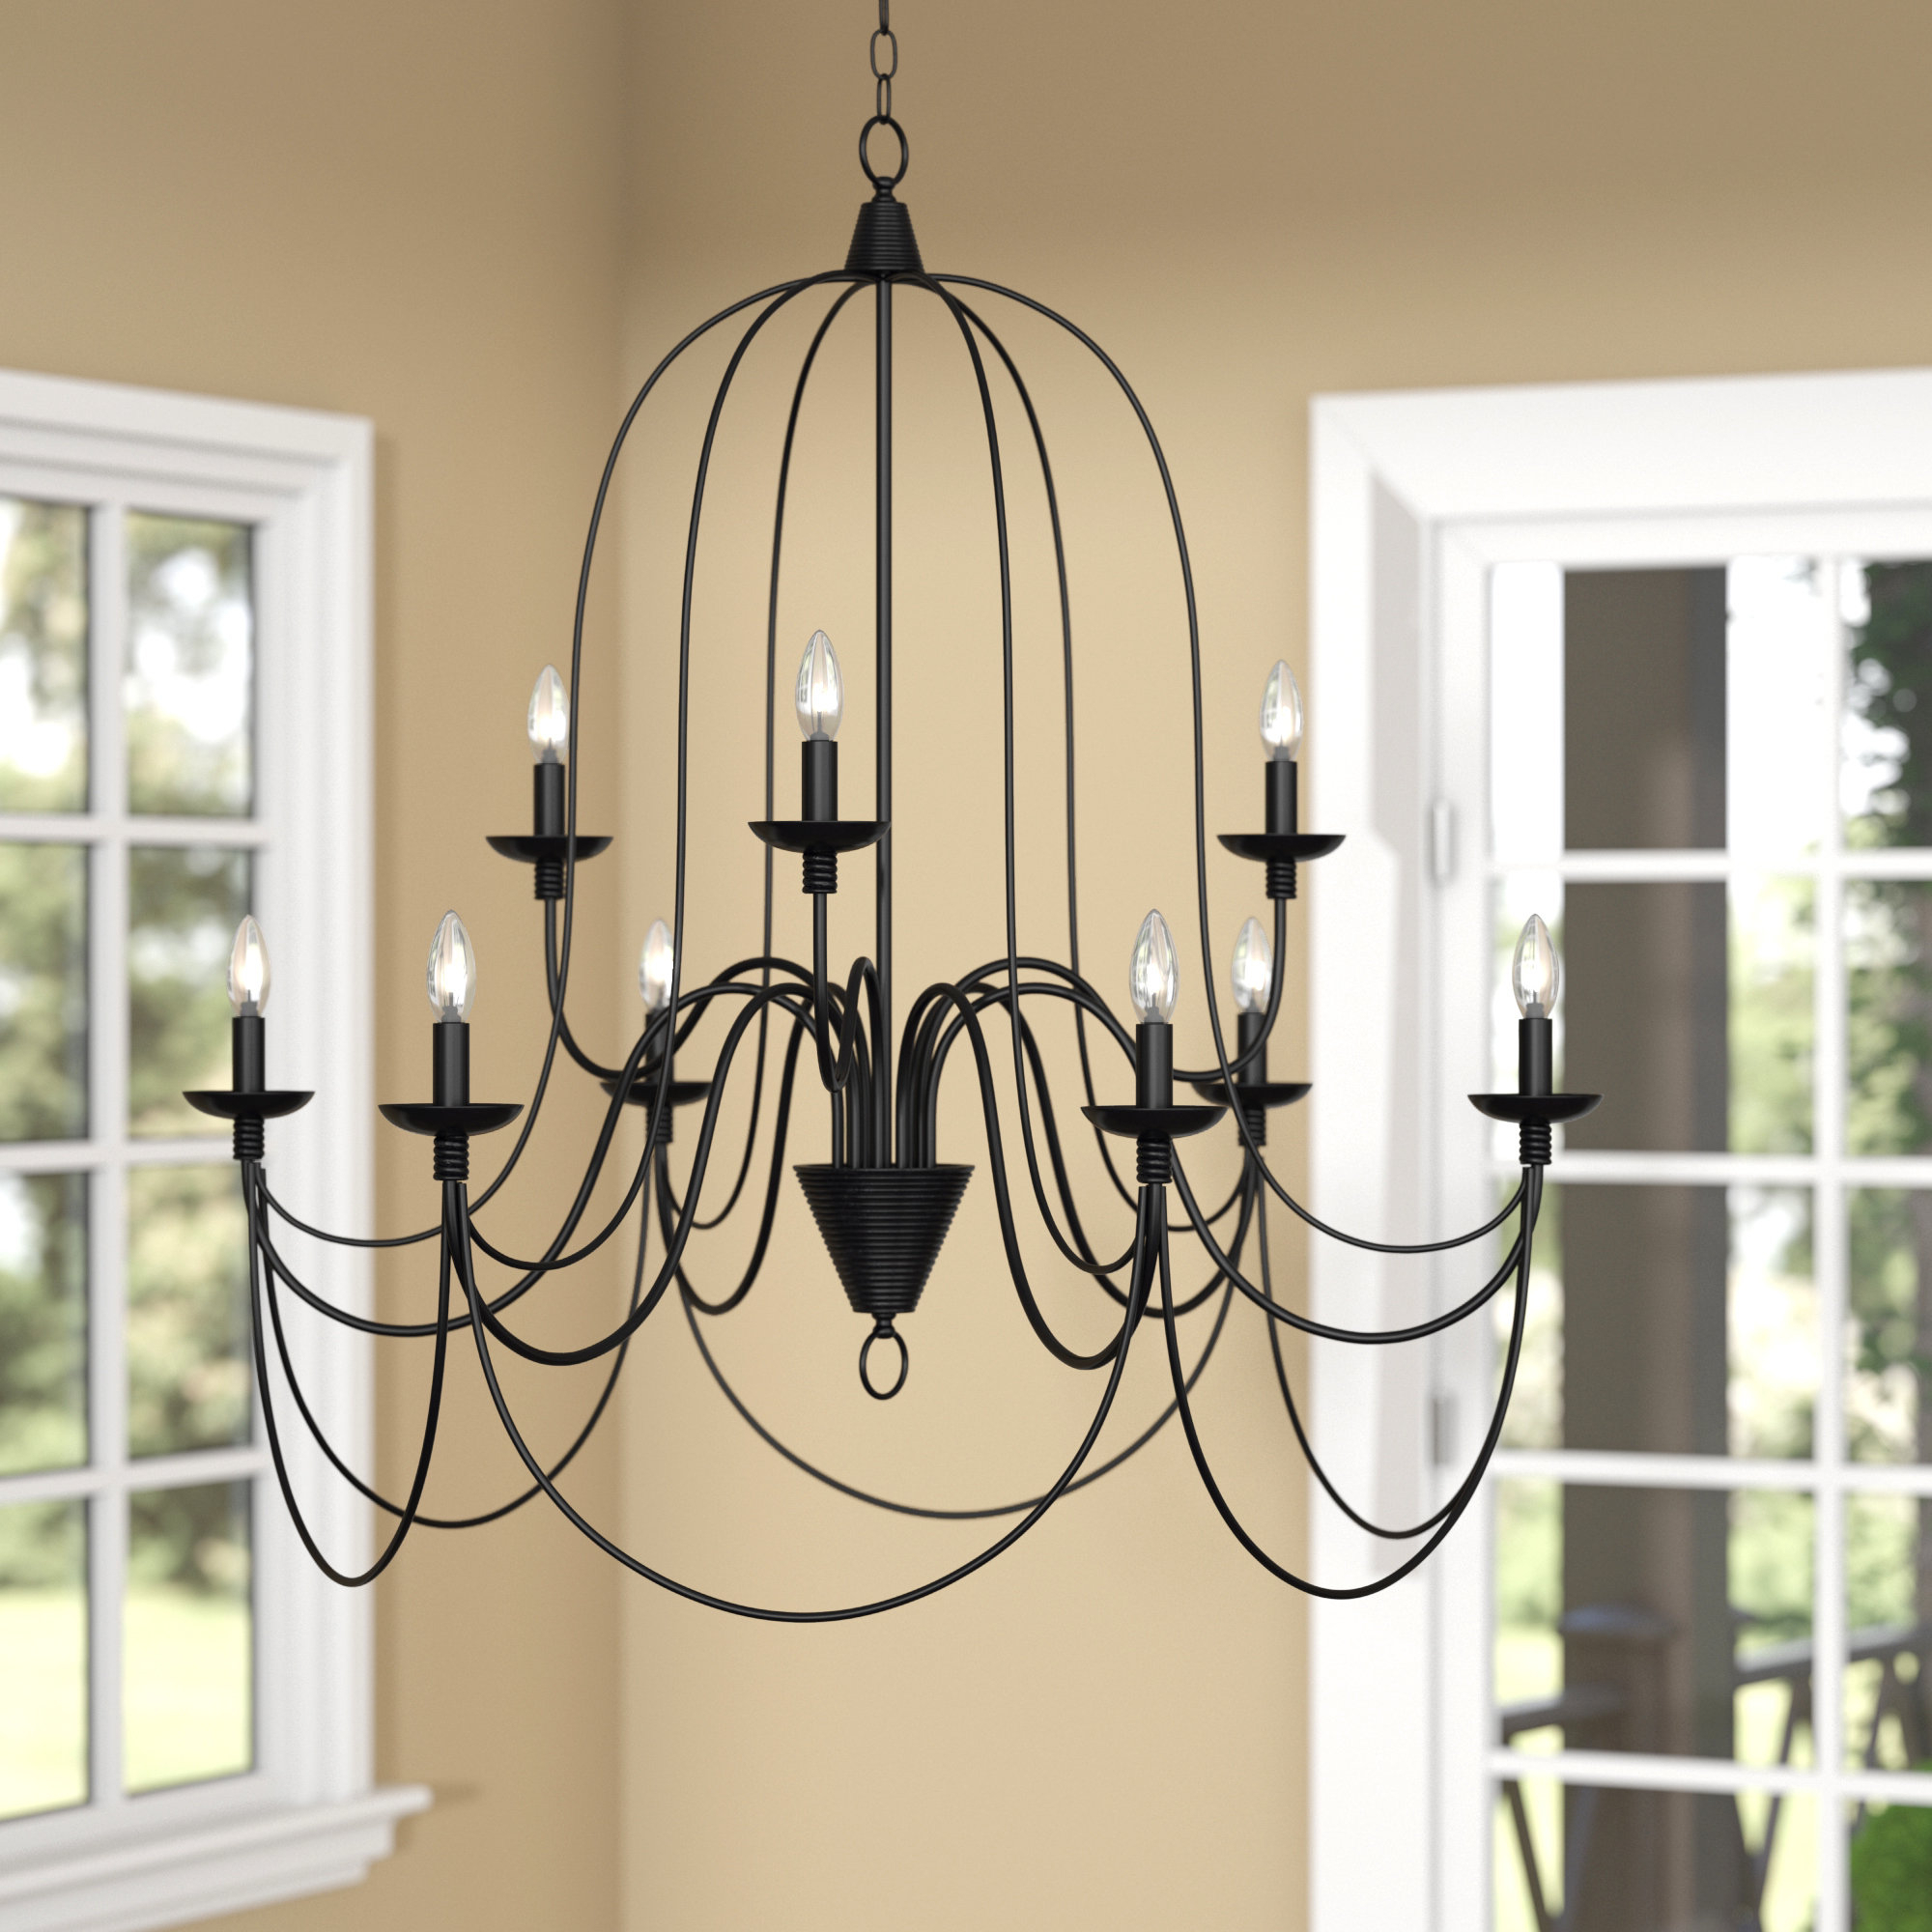 Giverny 9 Light Candle Style Chandeliers For 2019 Watford 9 Light Candle Style Chandelier (View 4 of 25)